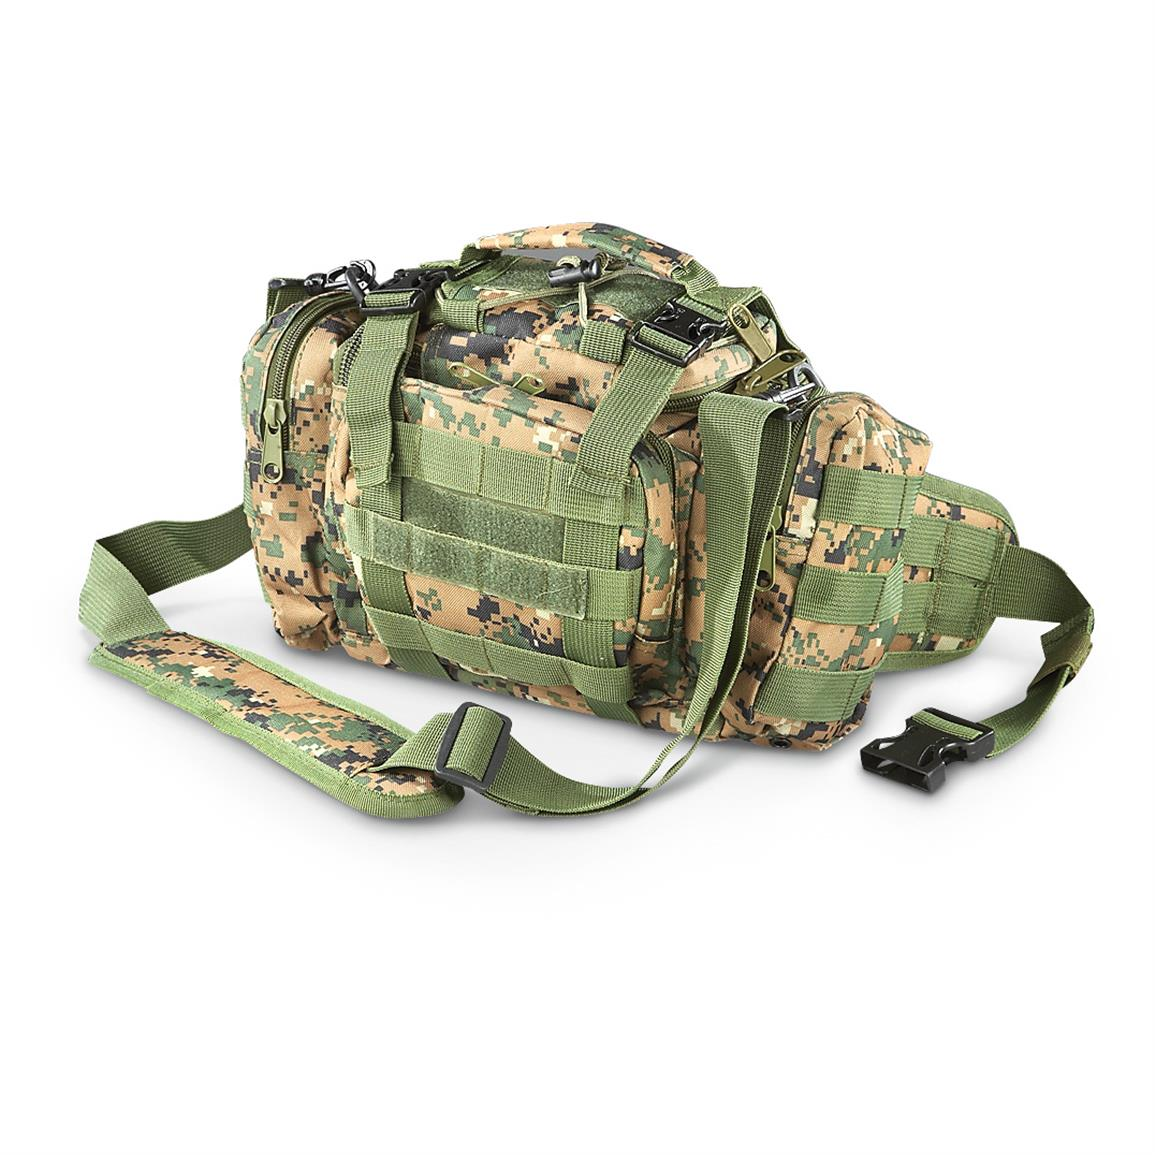 Tactical Shooter's Shoulder Bag, Digital Woodland • 585-cu. in. capacity